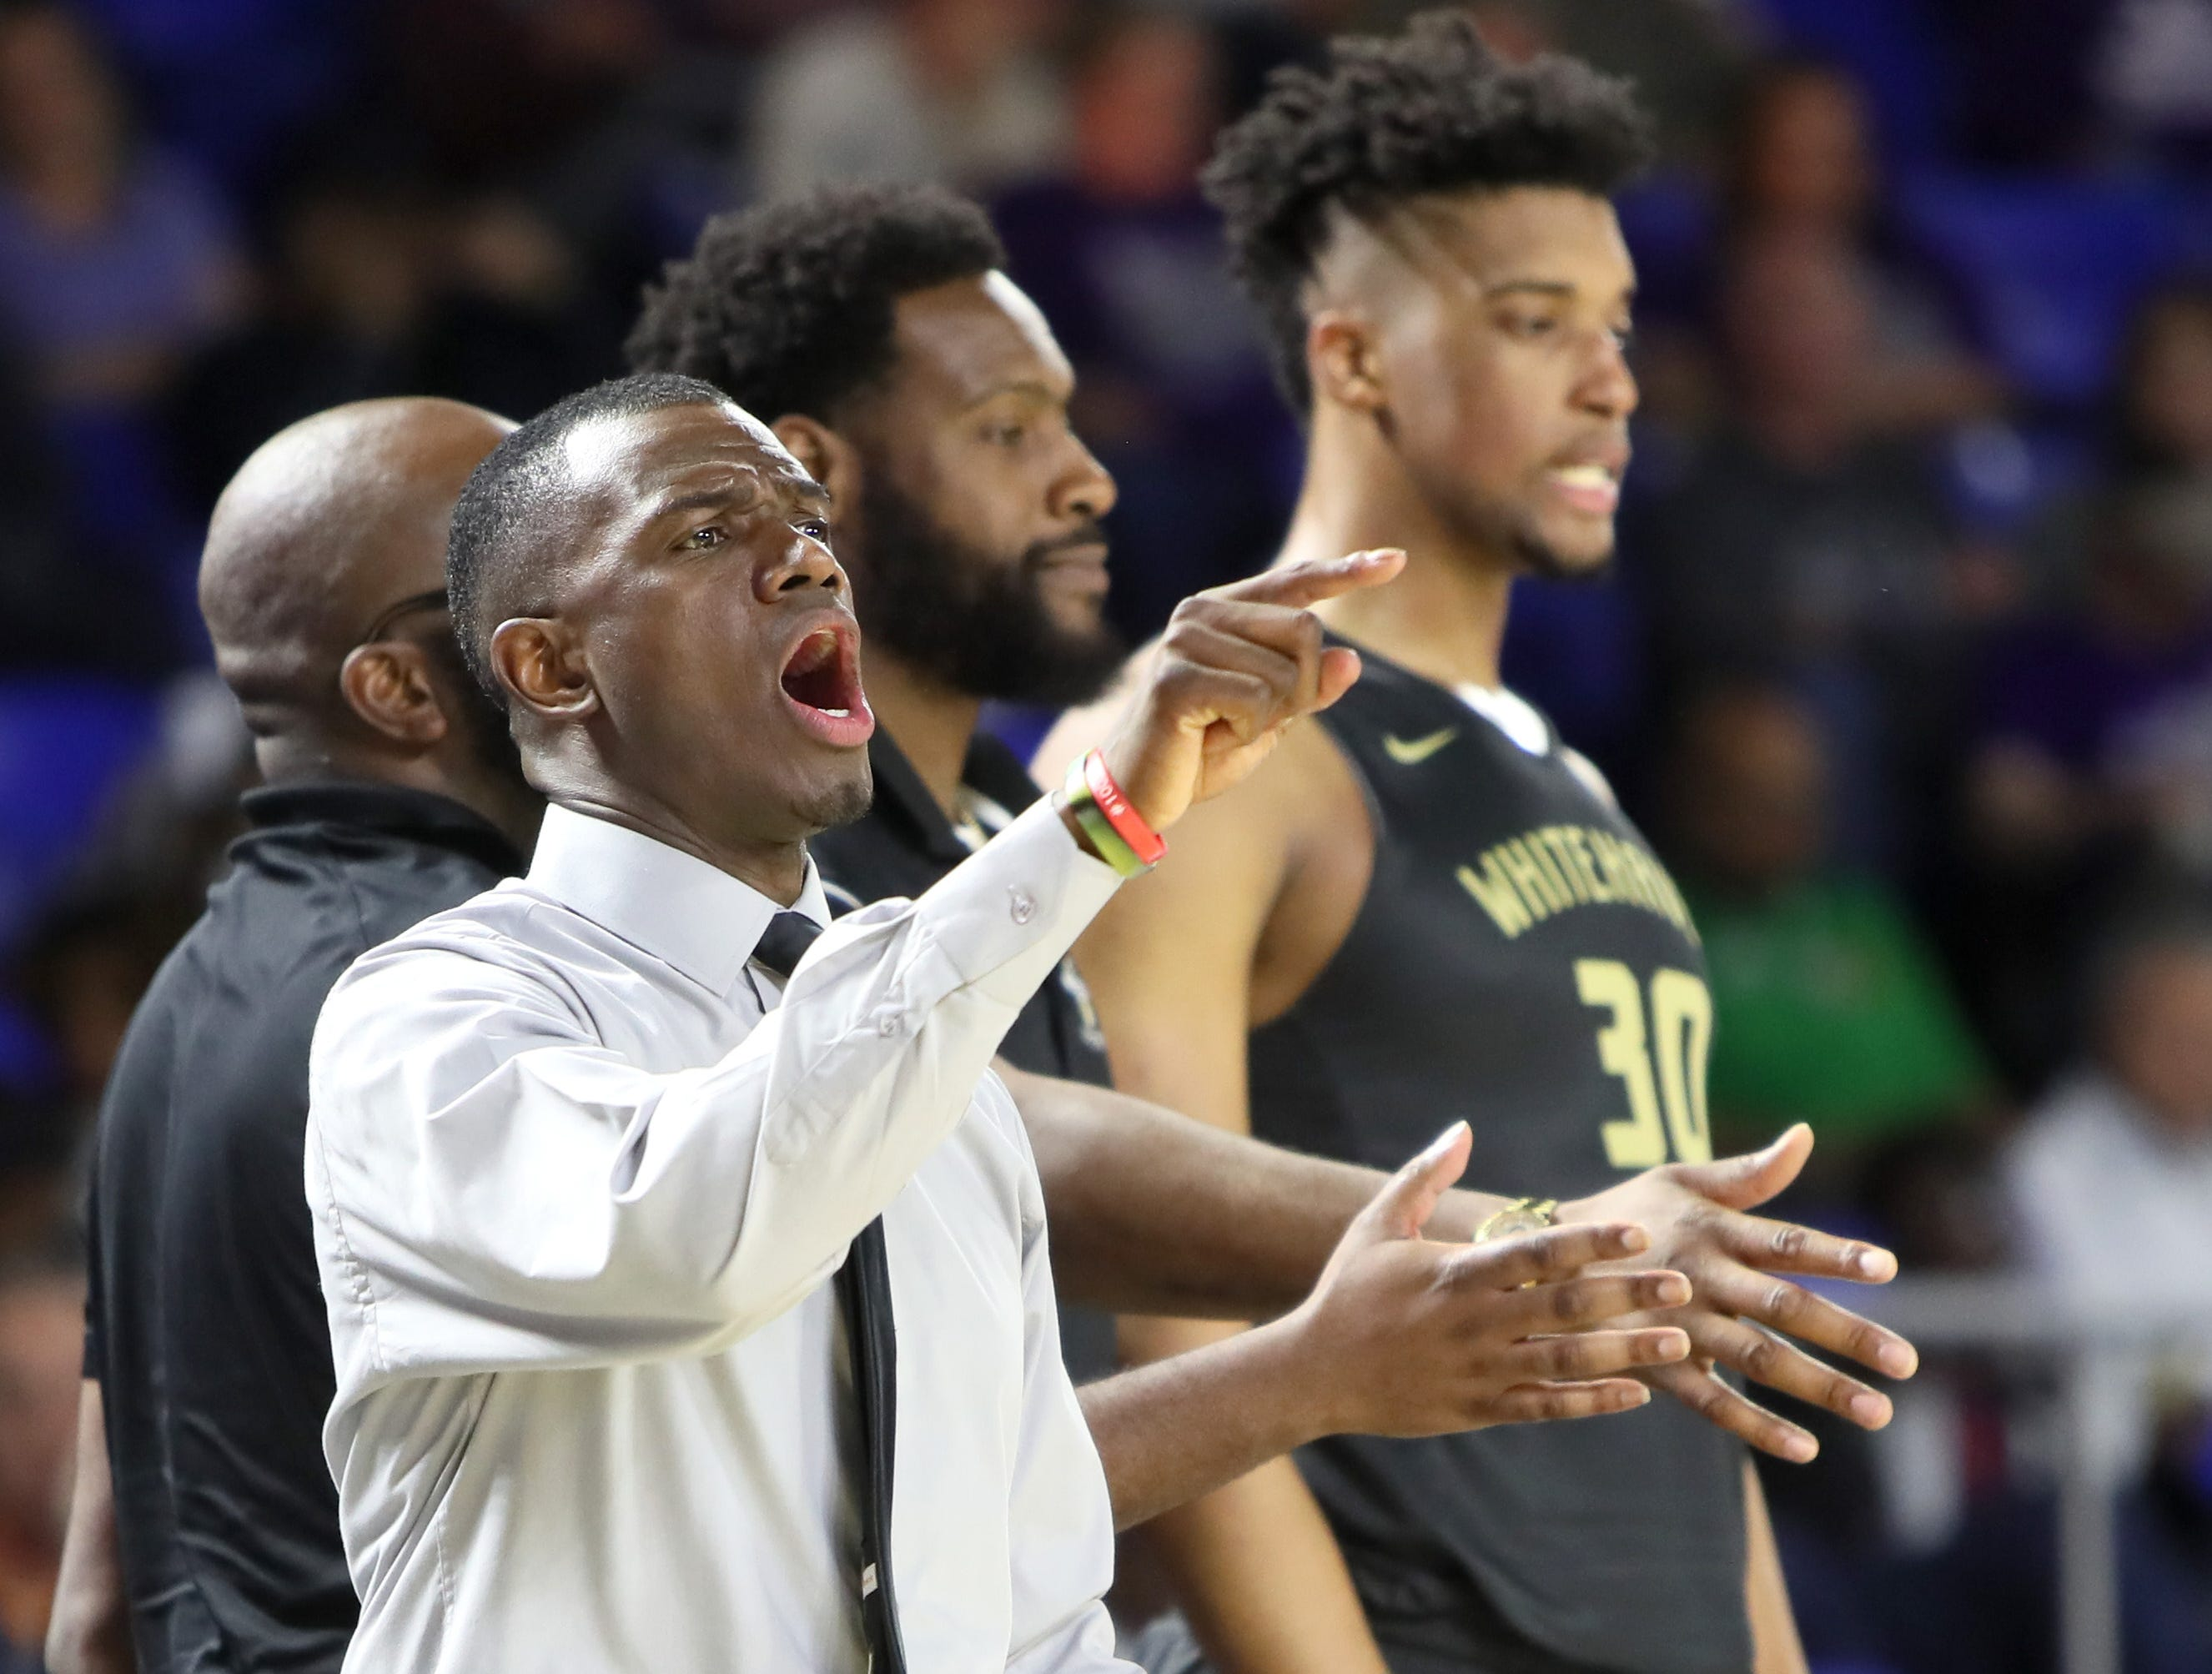 Whitehaven Head Coach Faragi Phillips yells out to his team as they take on Sevier County during the TSSAA Division I basketball state tournament at the Murphy Center in Murfreesboro, Tenn. on Wednesday, March 13, 2019.